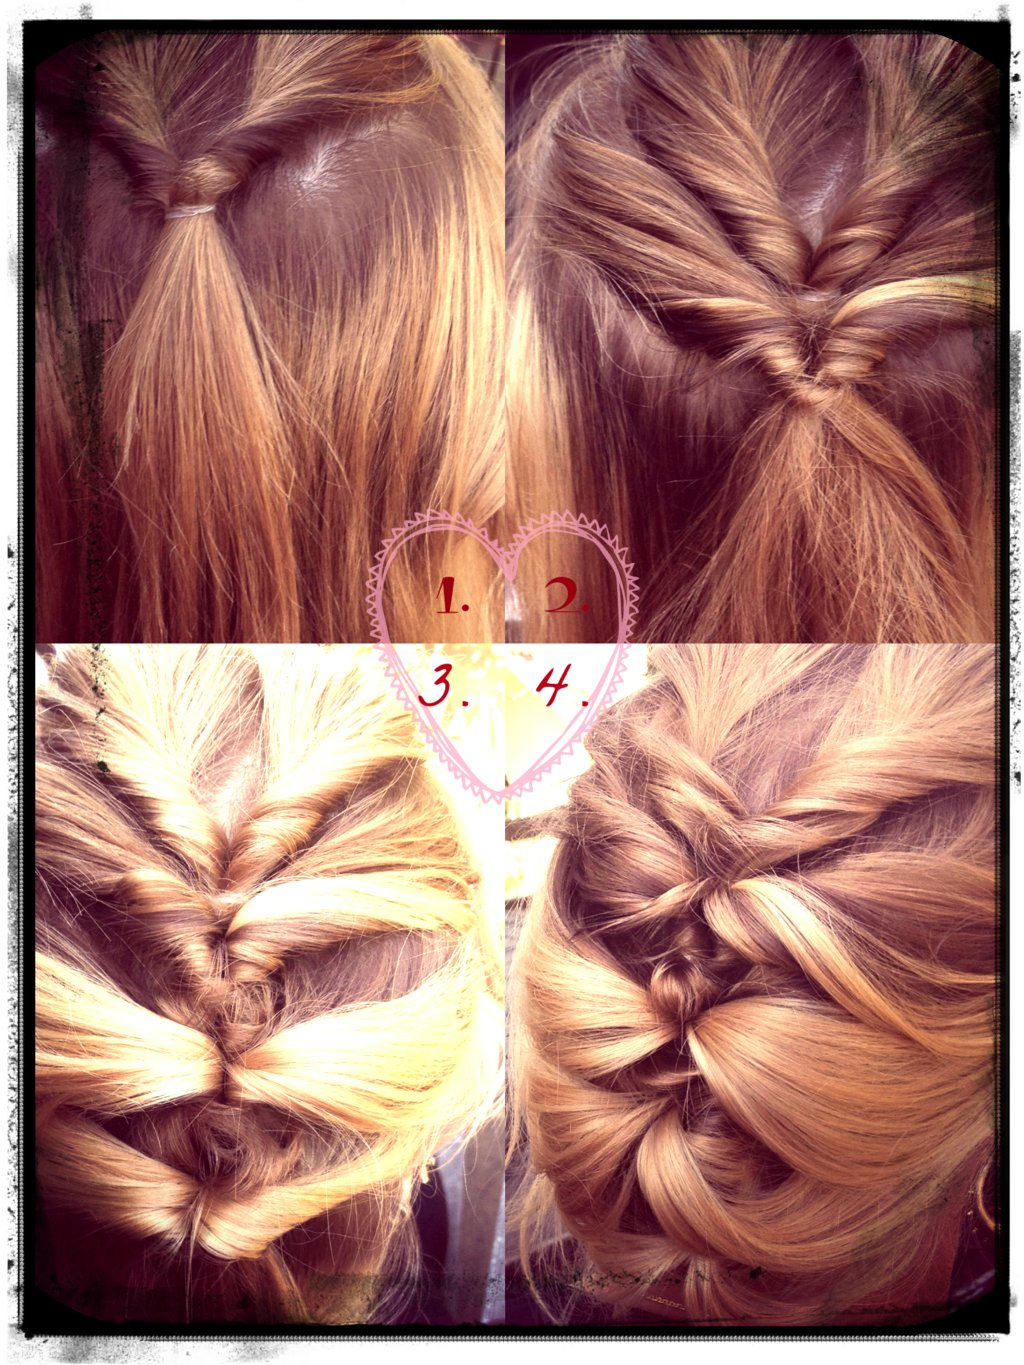 How-to-hair-girl-diy-wedding-hairstyle-topy-tail-twisted-updo.full